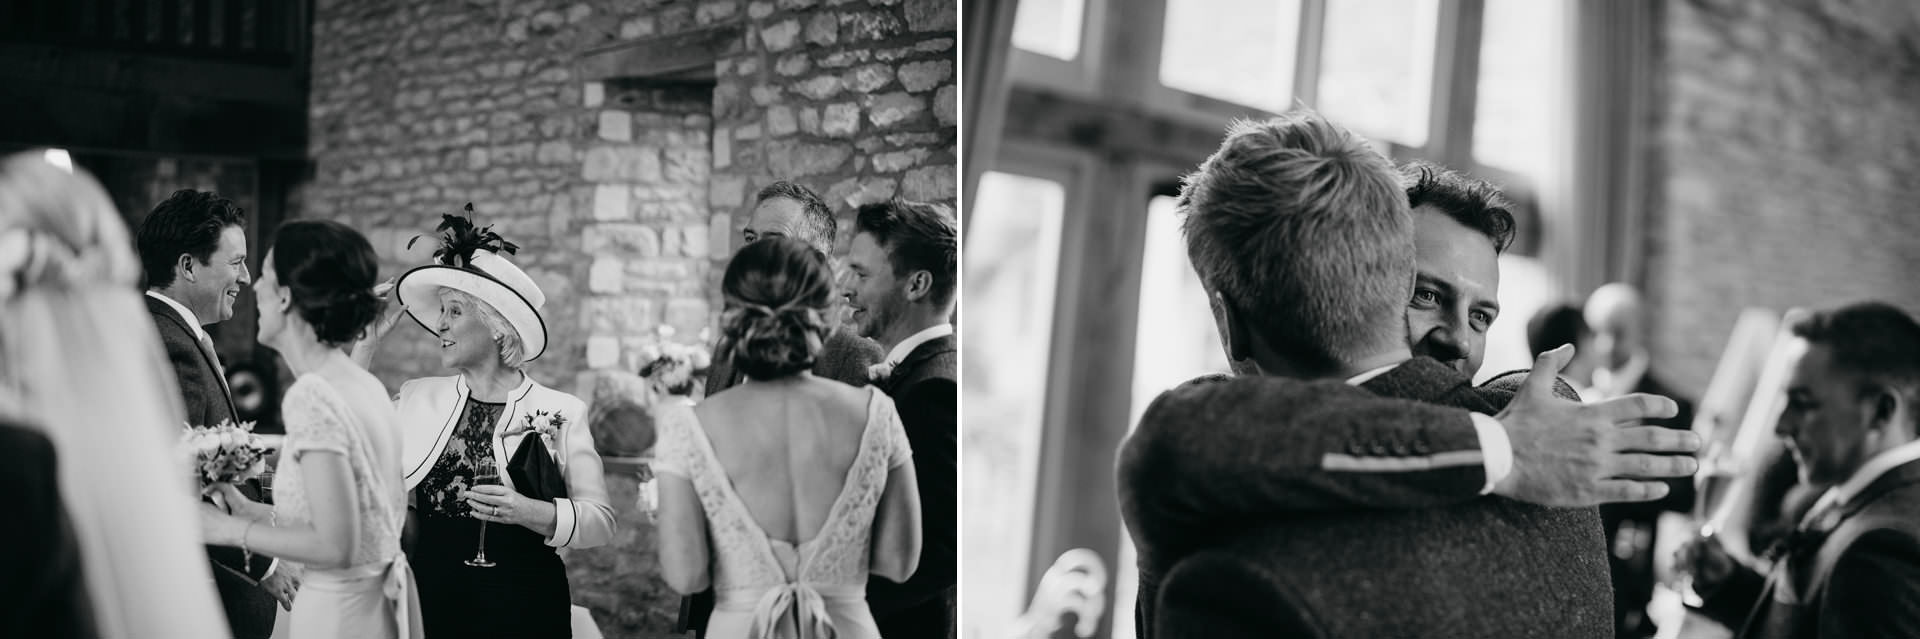 Caswell House Wedding Photographer - Jessica & Chris 23